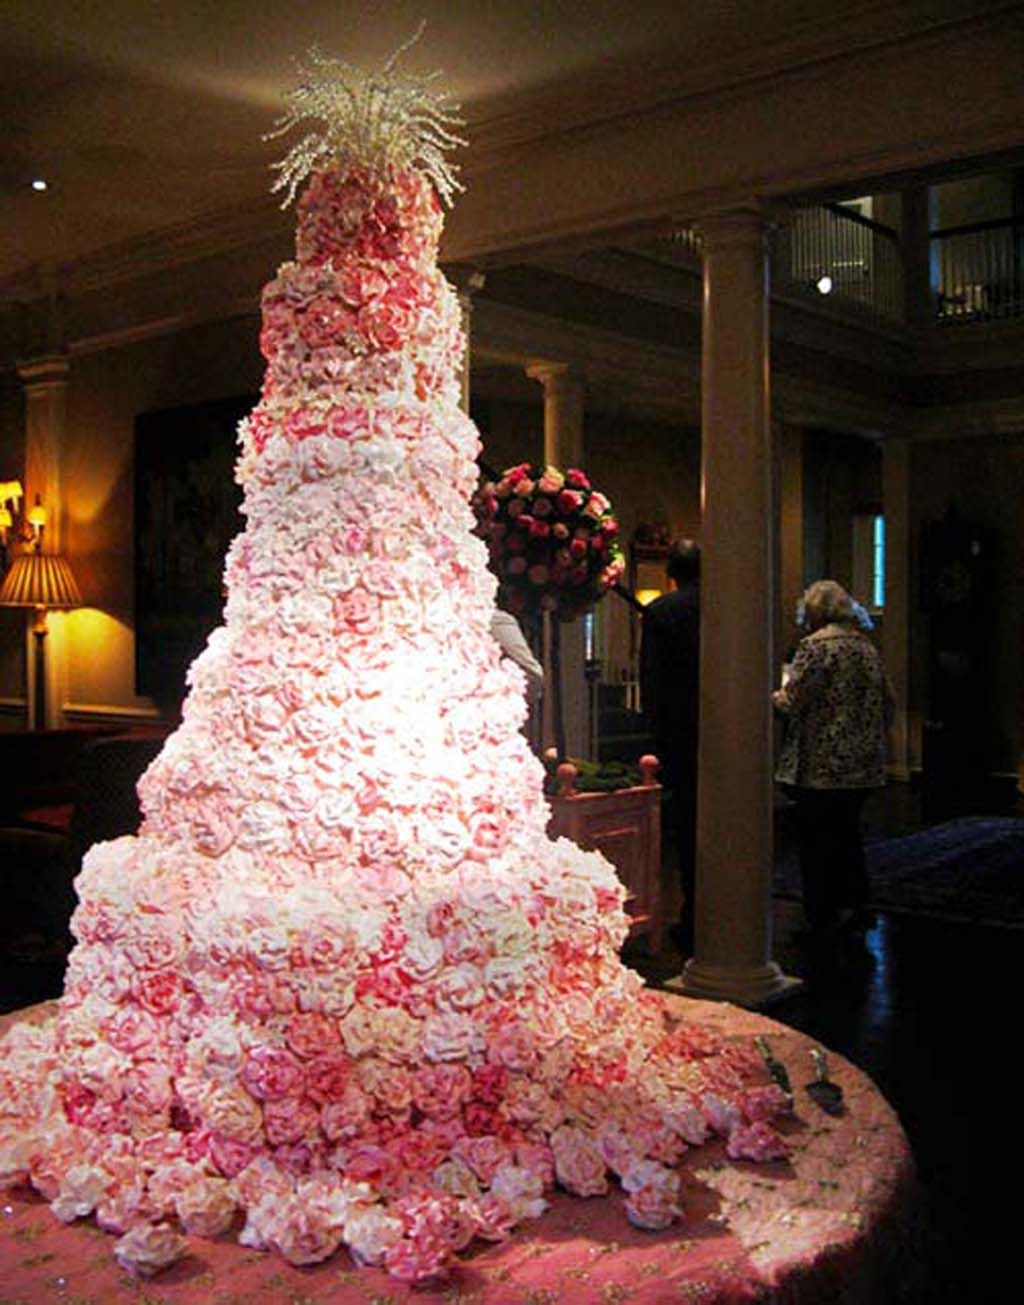 Cake Images For Best : Holy flowery wedding cake! Take about a lot of cake ...